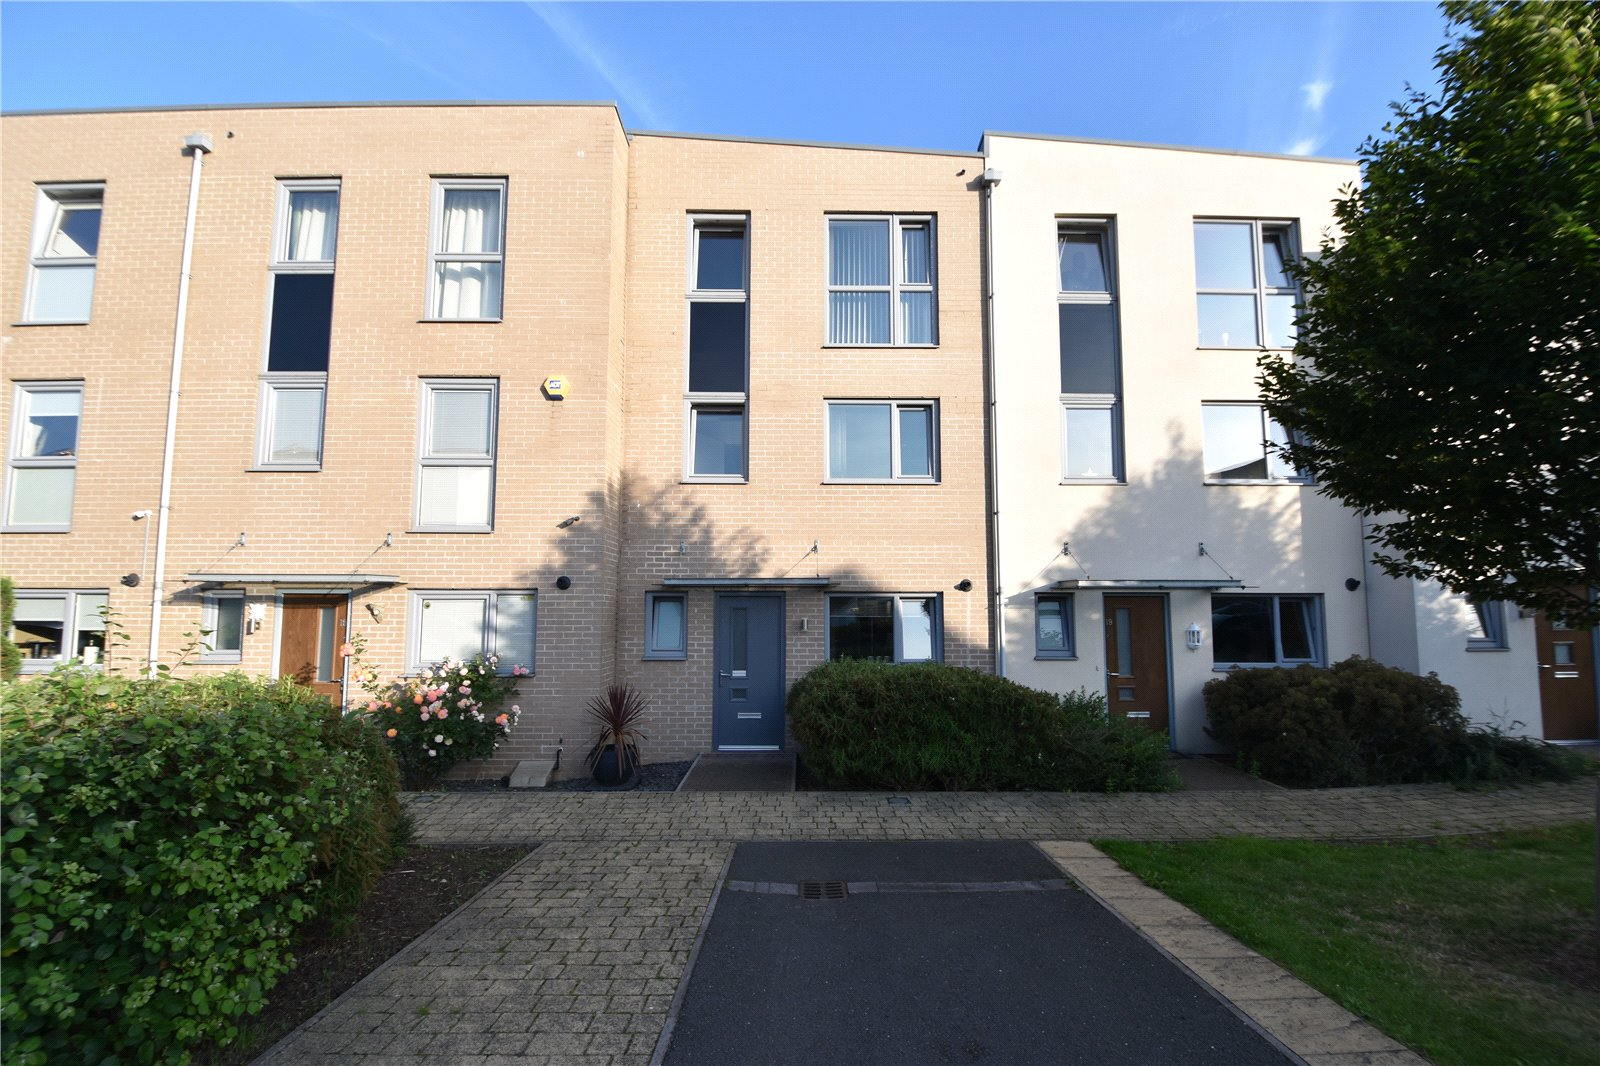 Shiers Avenue, Dartford, Kent, DA1